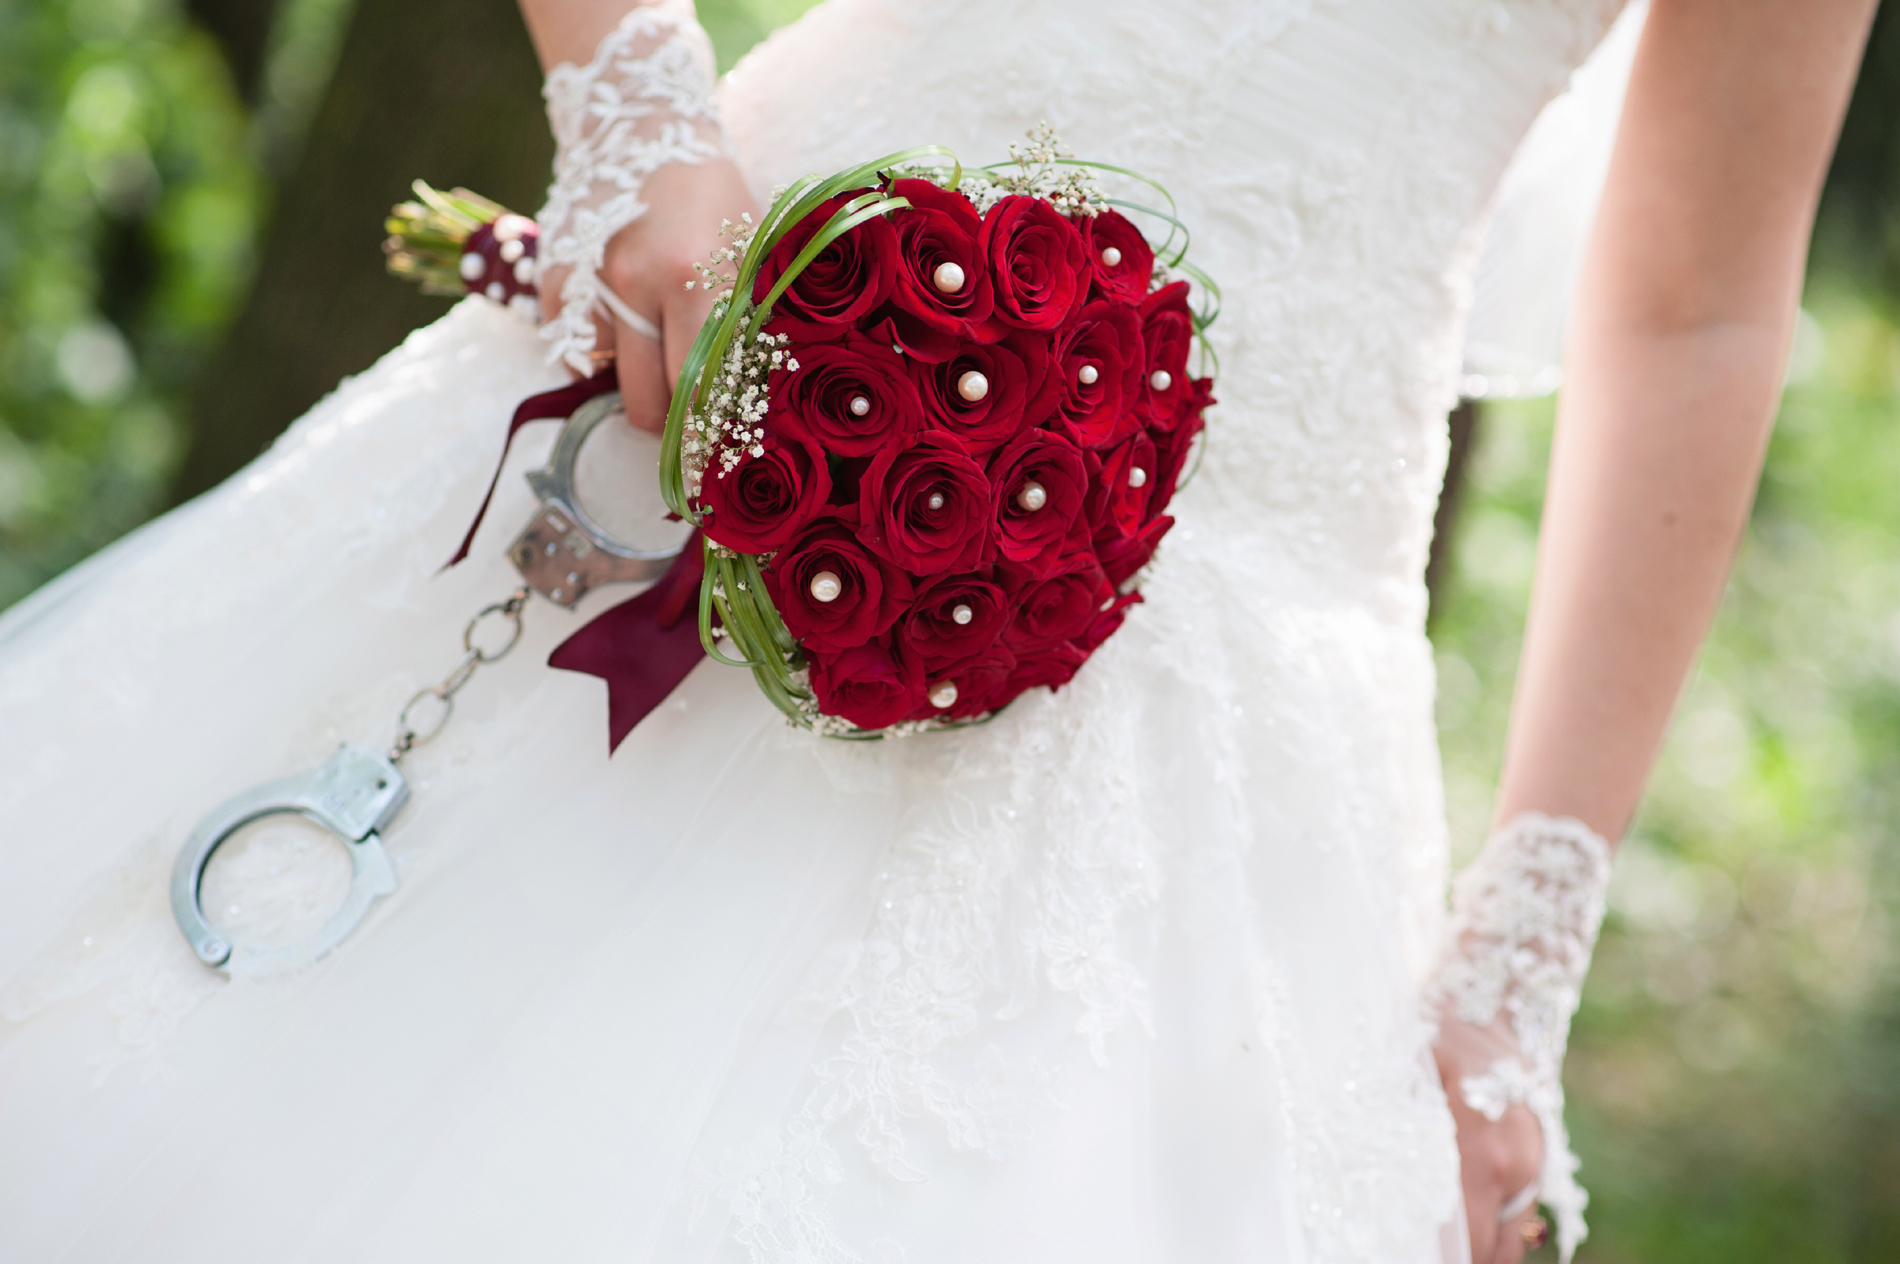 Holding a bouquet of Red Roses bride 53440